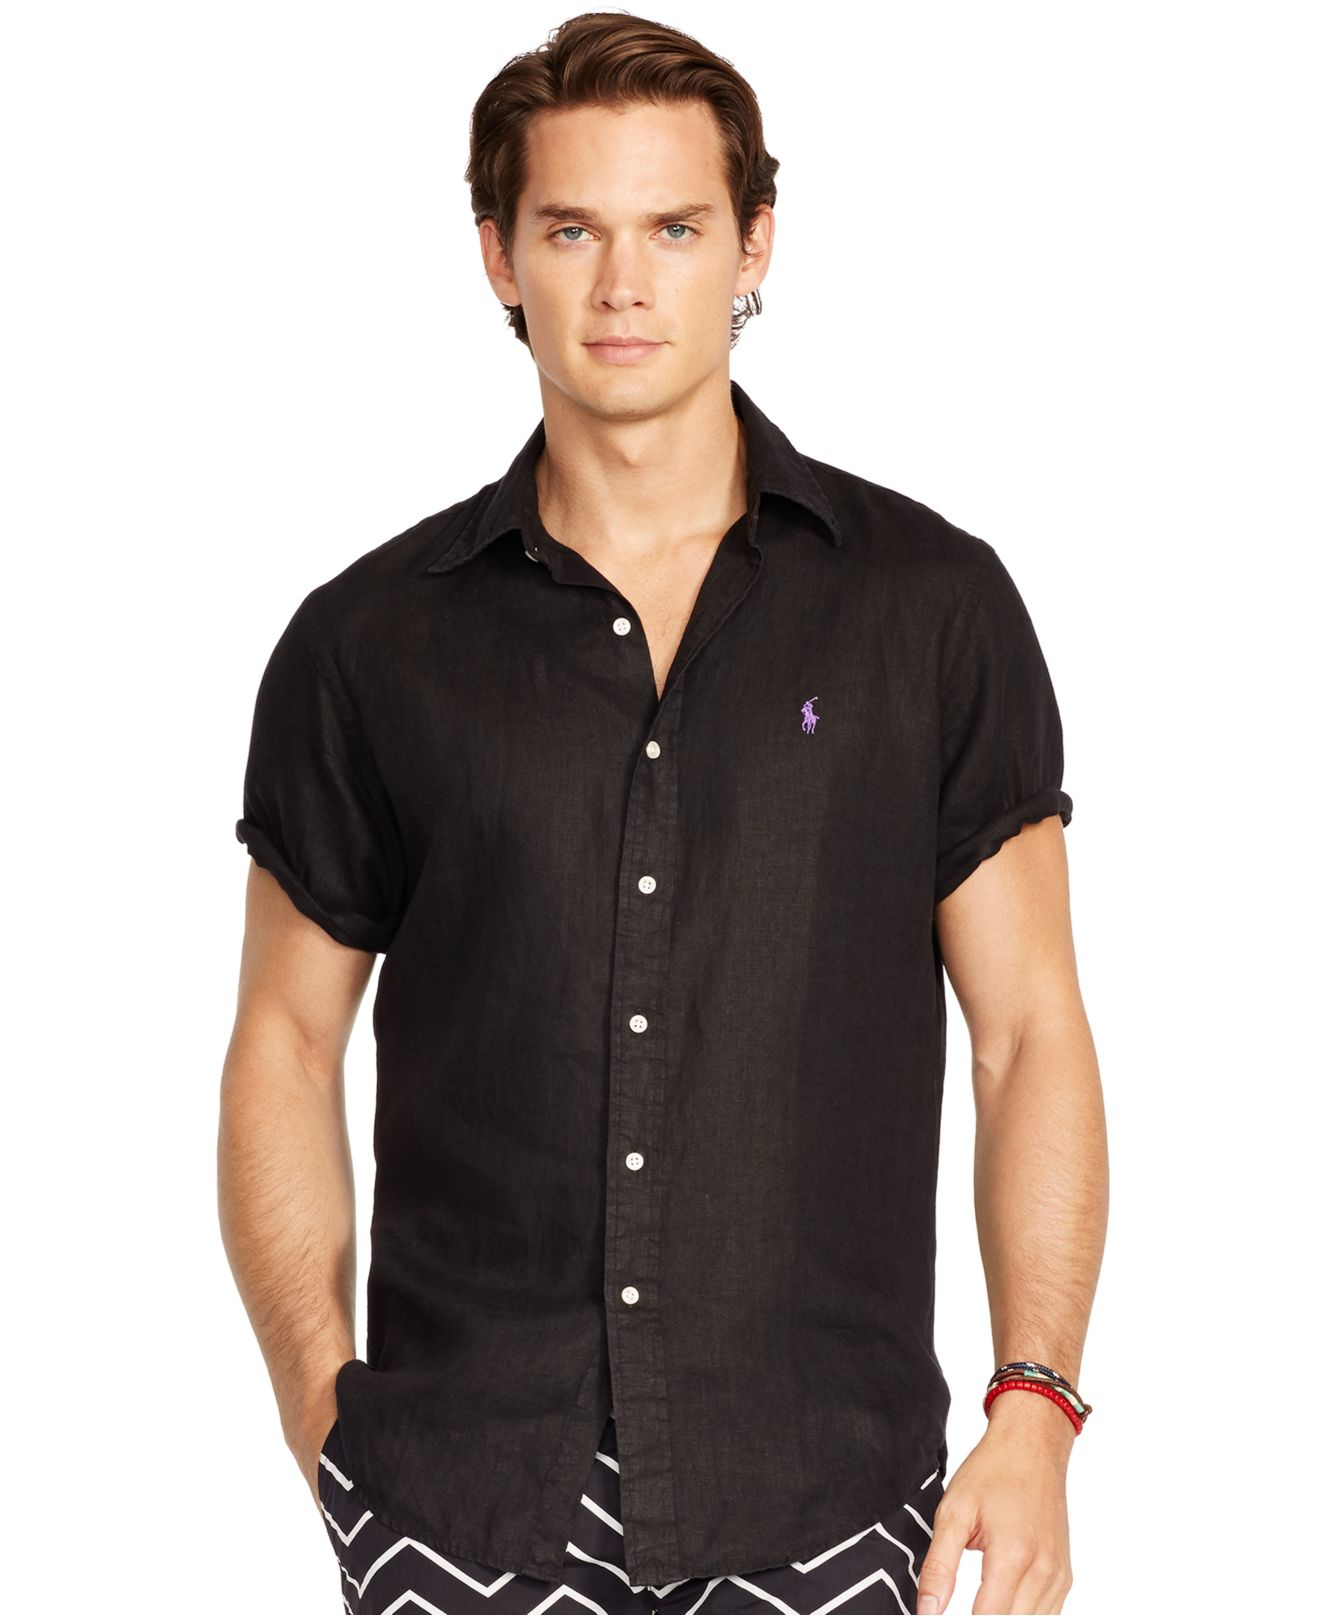 polo ralph lauren short sleeved linen shirt in black for